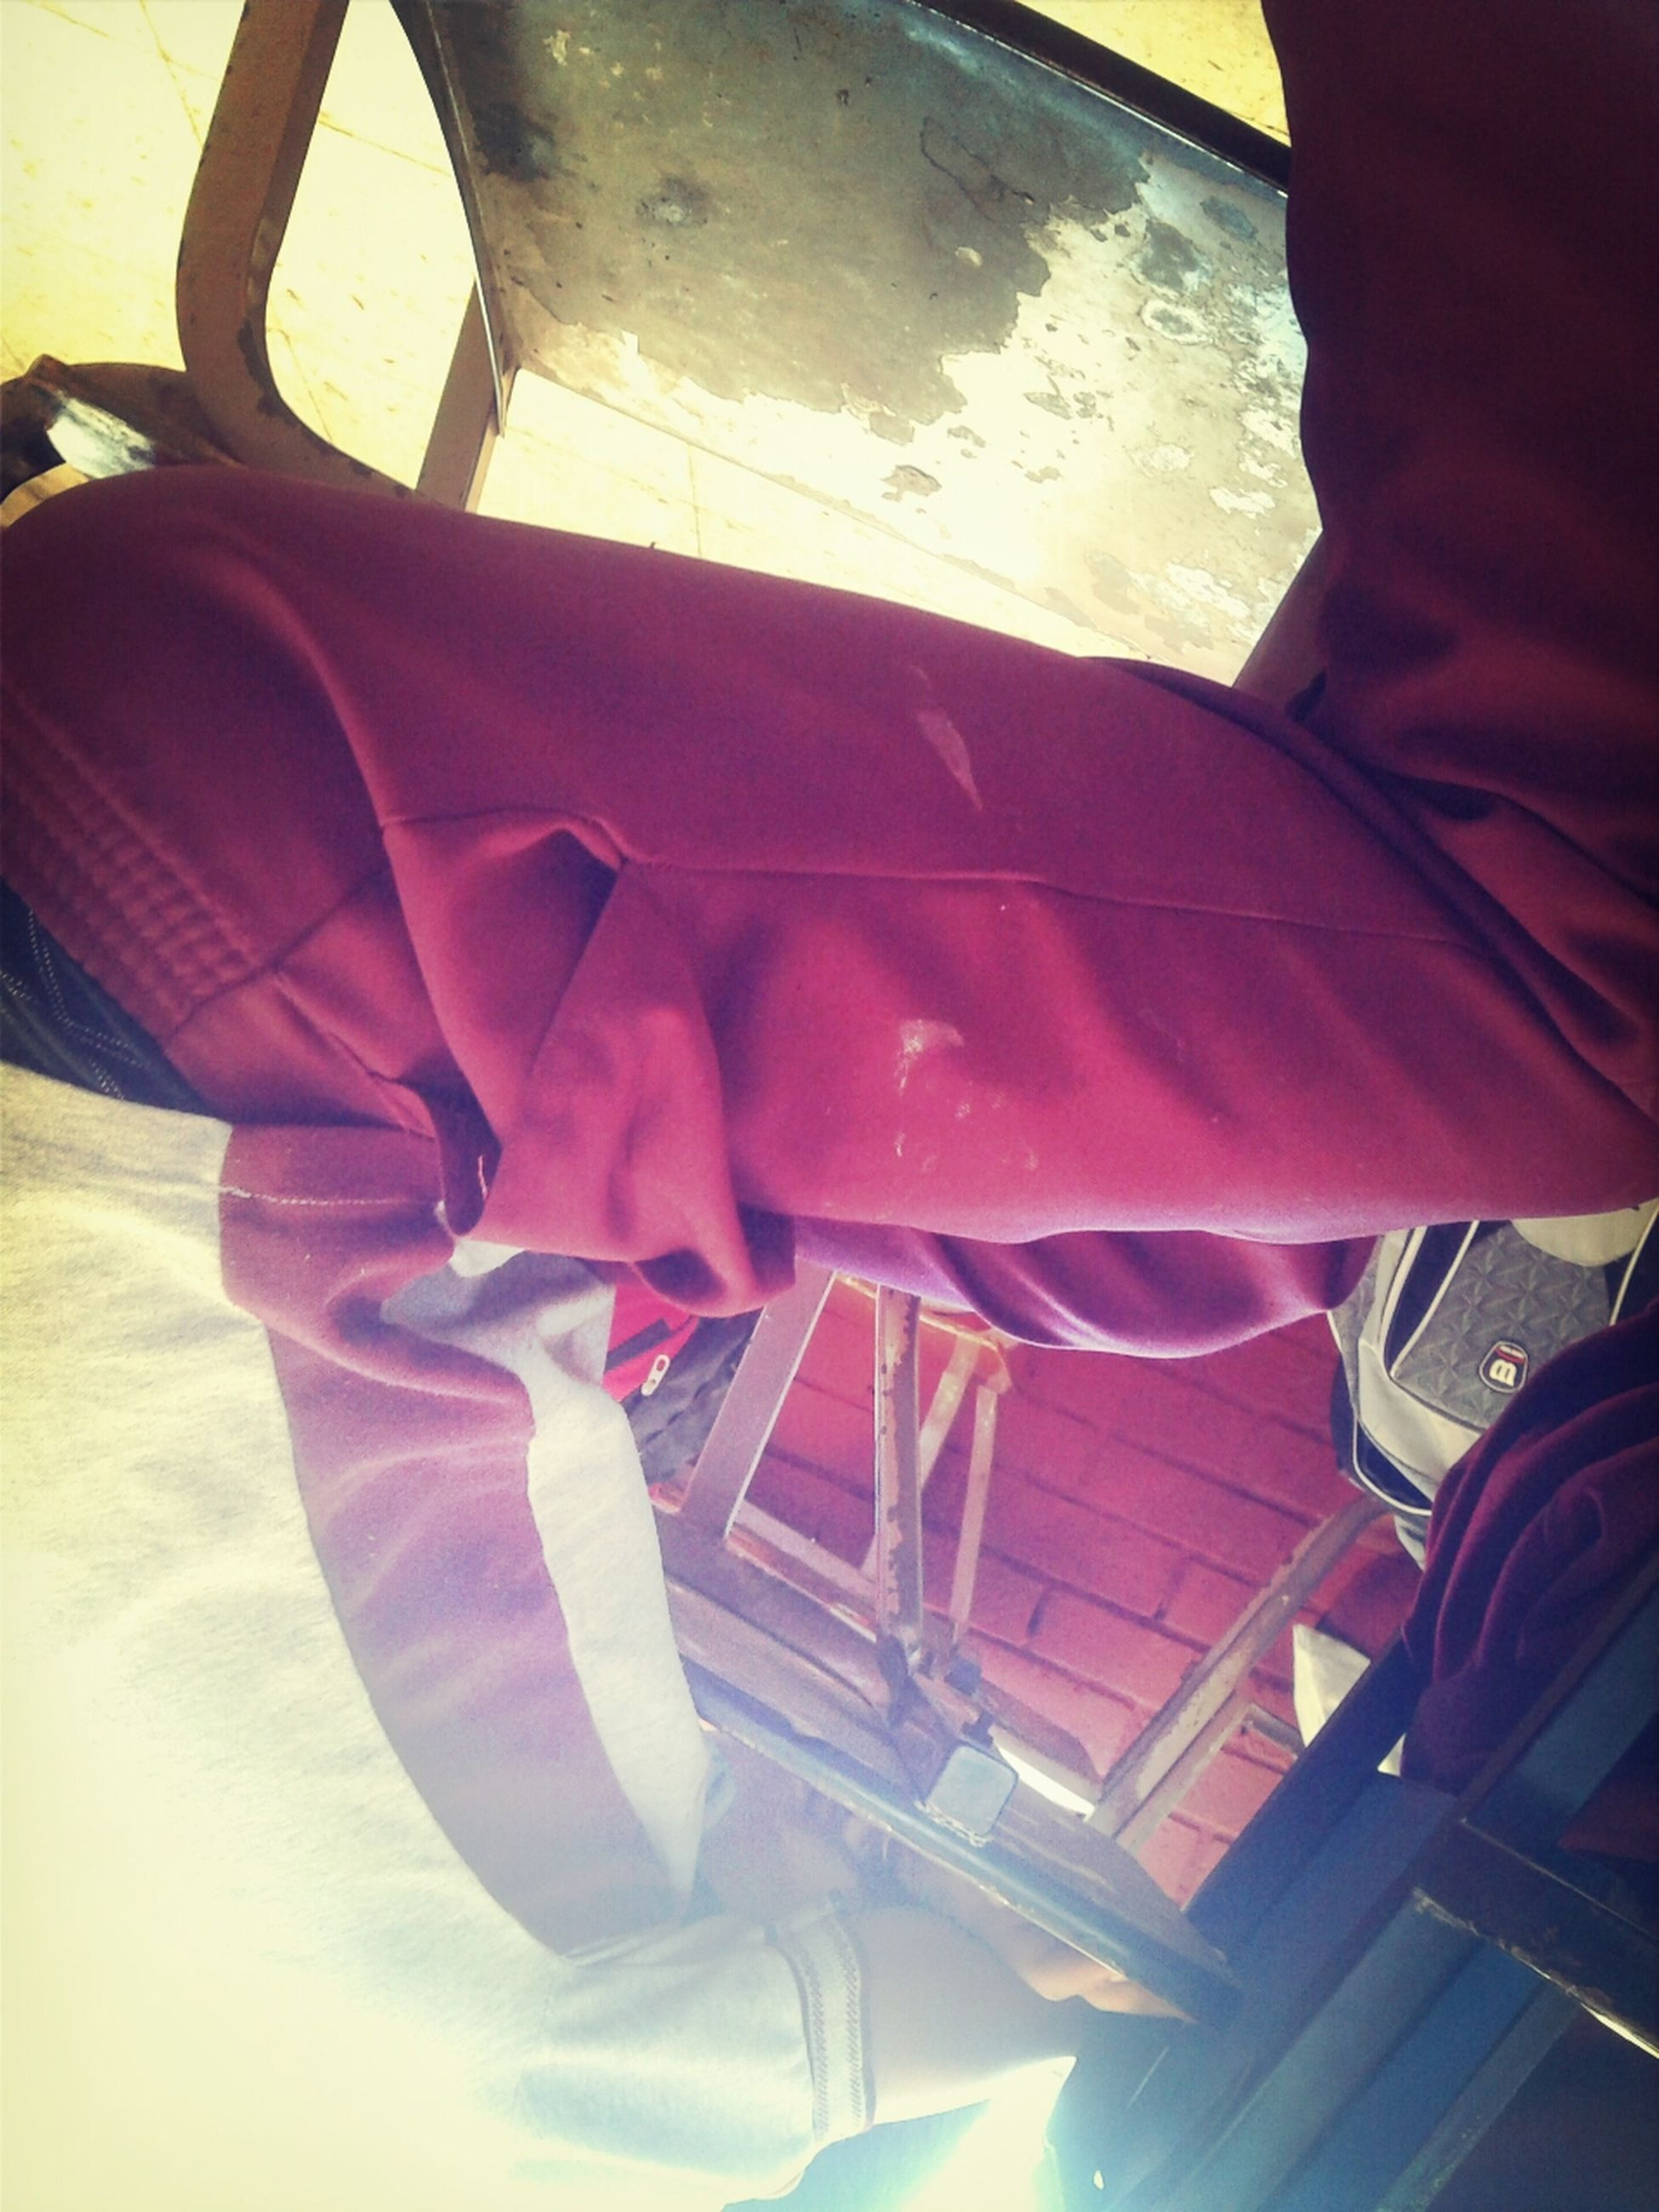 indoors, low section, person, sitting, transportation, relaxation, chair, seat, high angle view, sunlight, mode of transport, vehicle interior, lifestyles, shoe, land vehicle, men, red, travel